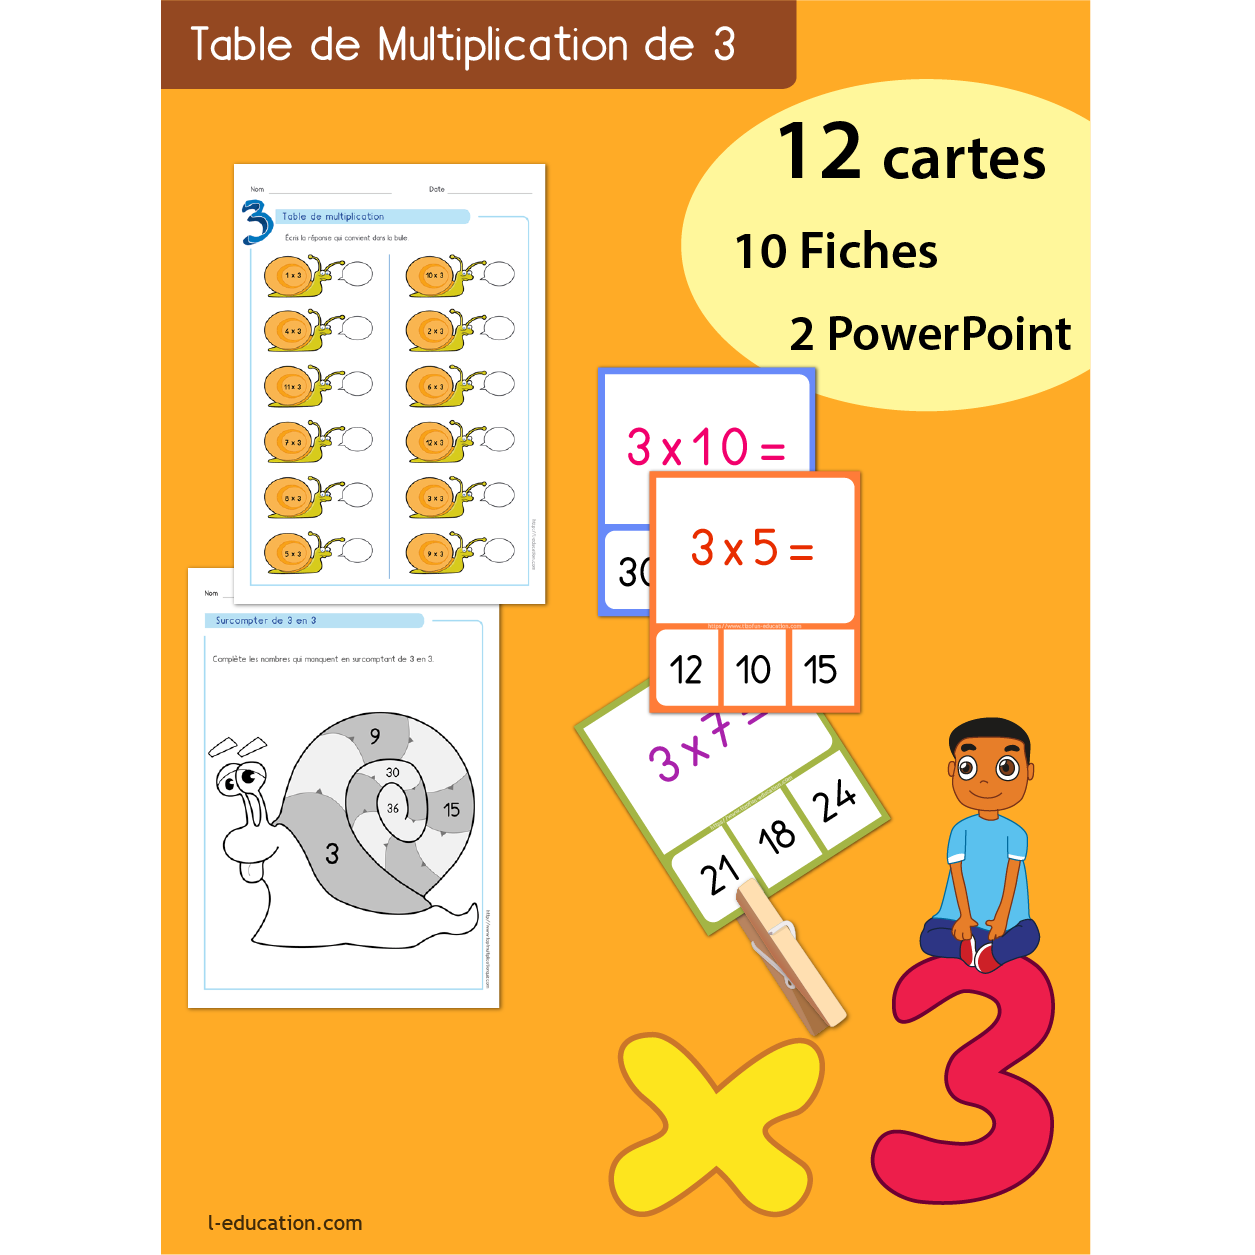 Quiz interactif cartes fiches table de multiplication de 3 - La table de multiplication de 3 ...